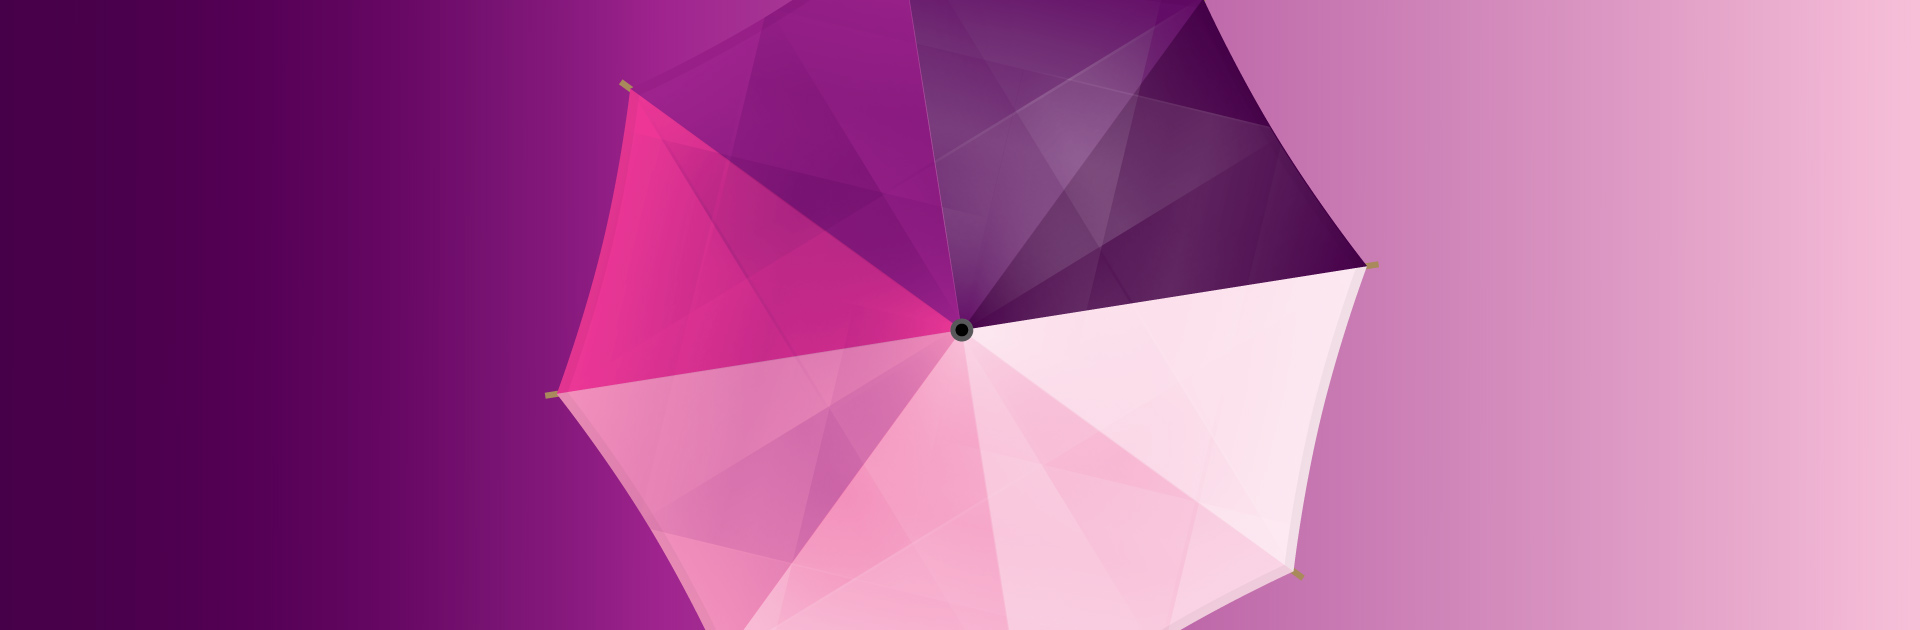 magenta-background